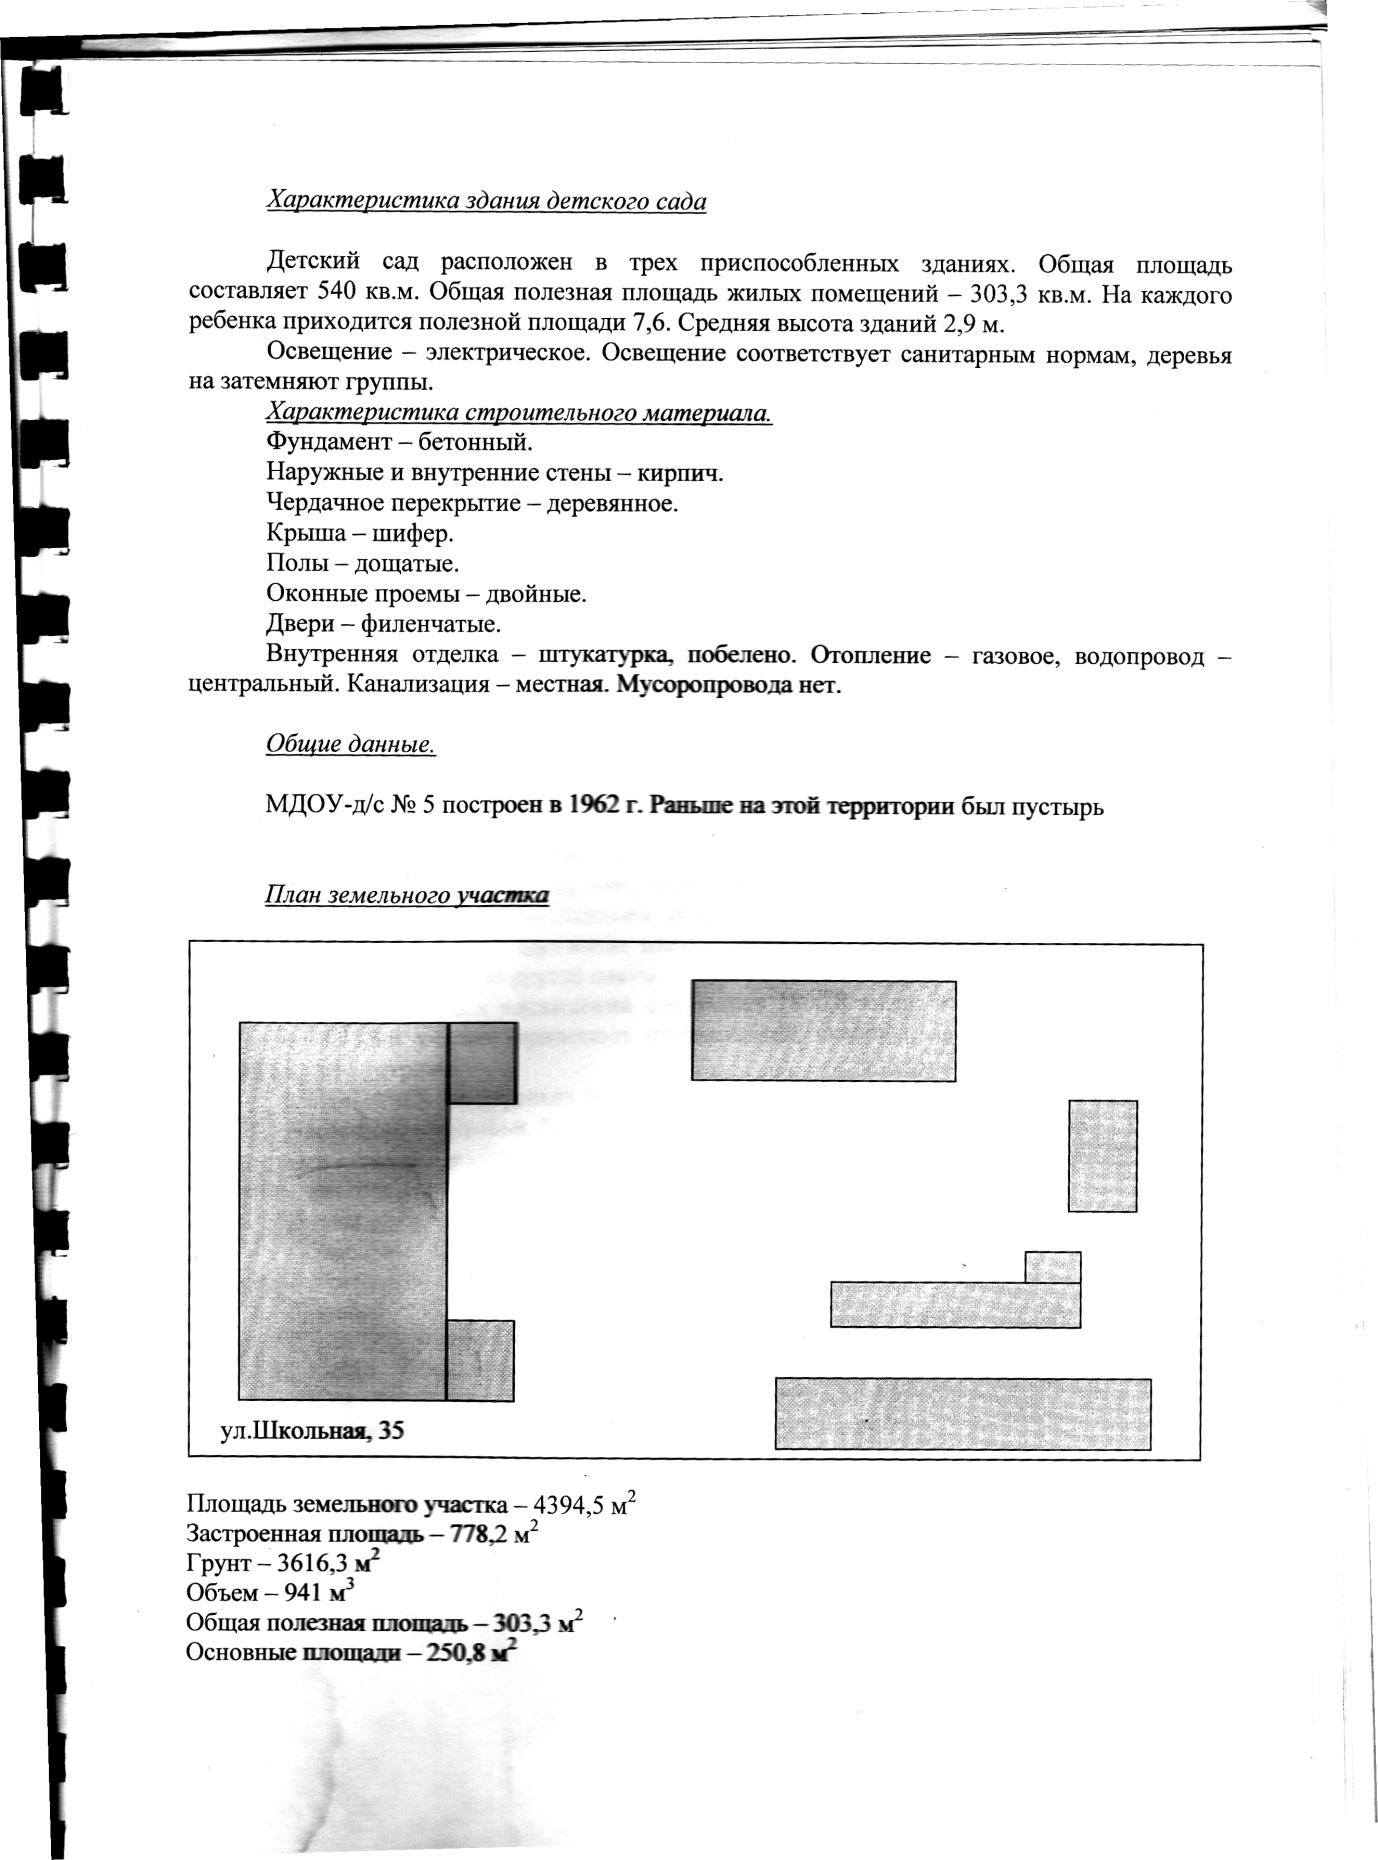 C:\Documents and Settings\User\Рабочий стол\чч.tif